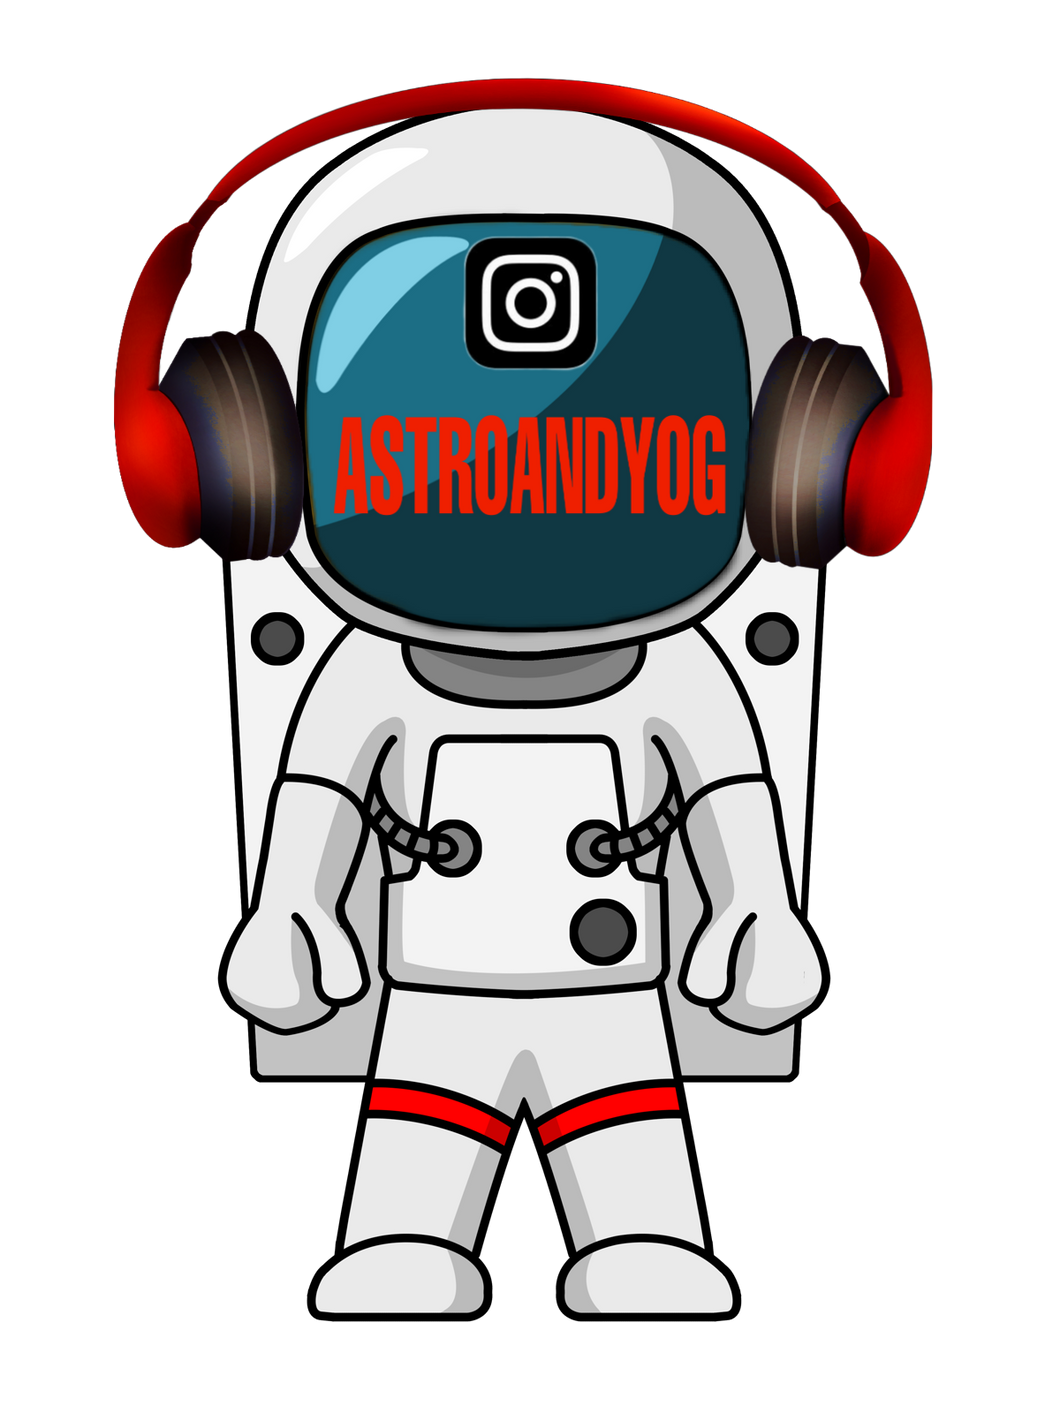 AstroAndyOG Stickers